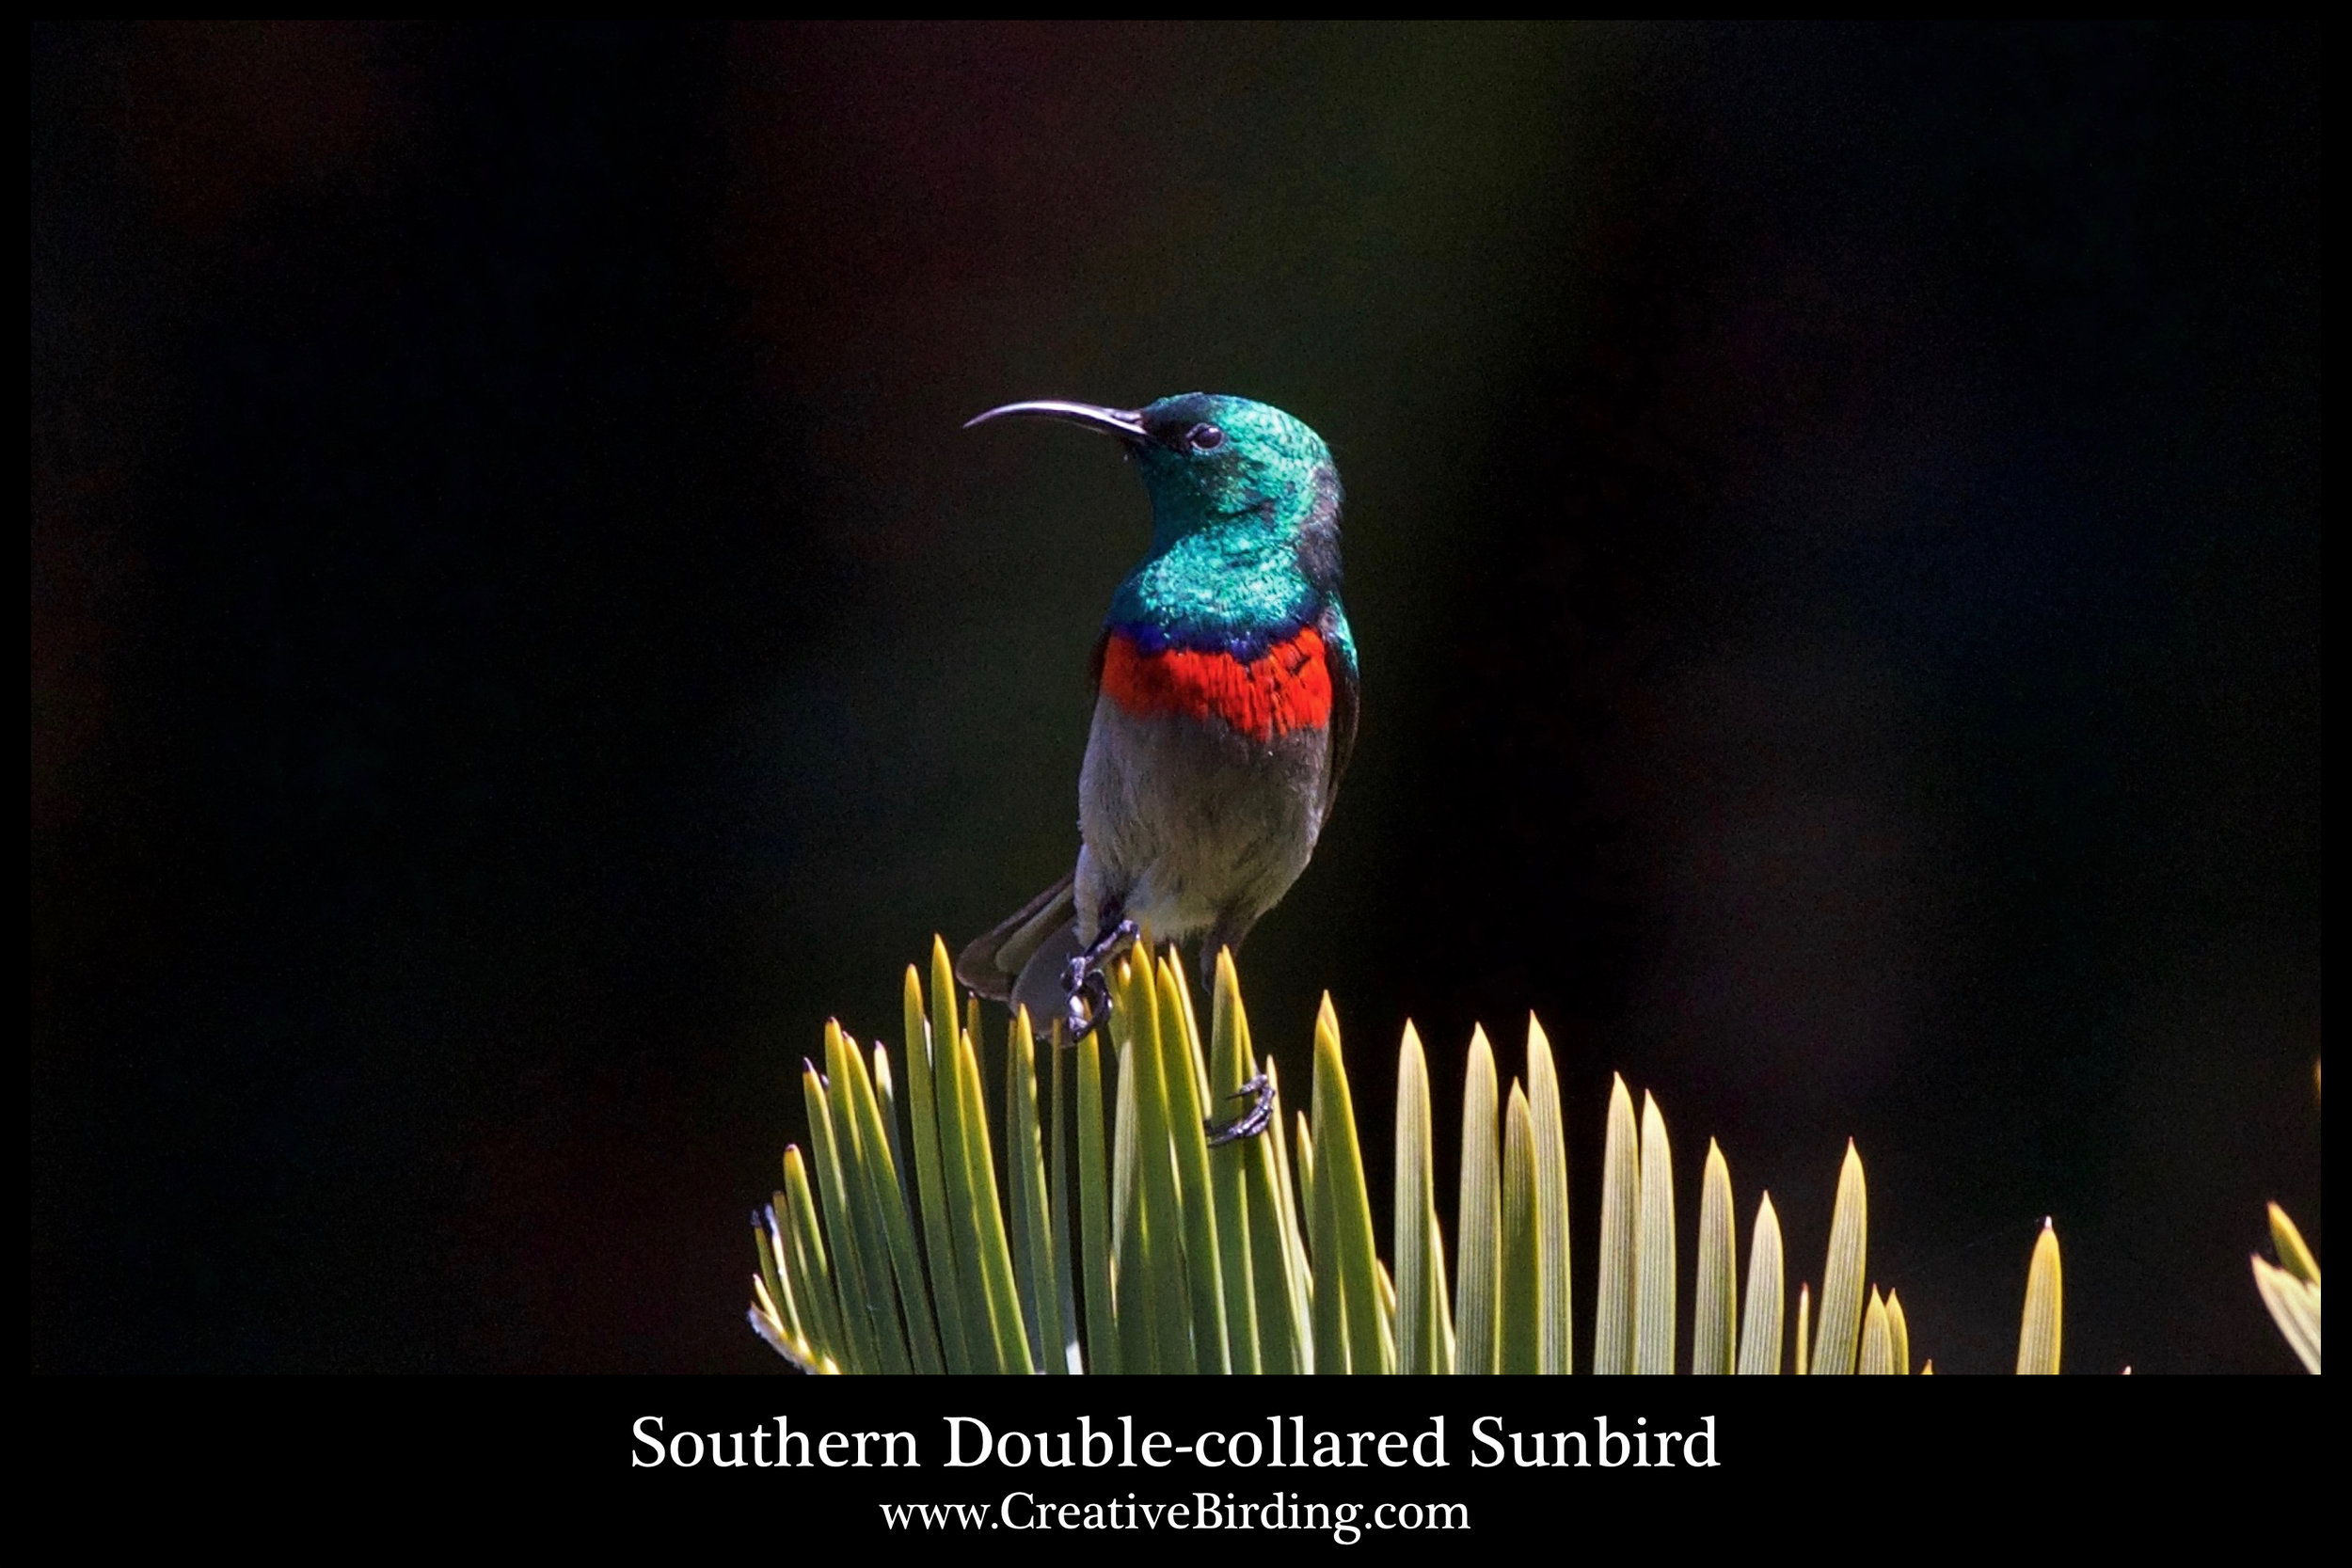 Southern Double-collared Sunbird cb2.jpg